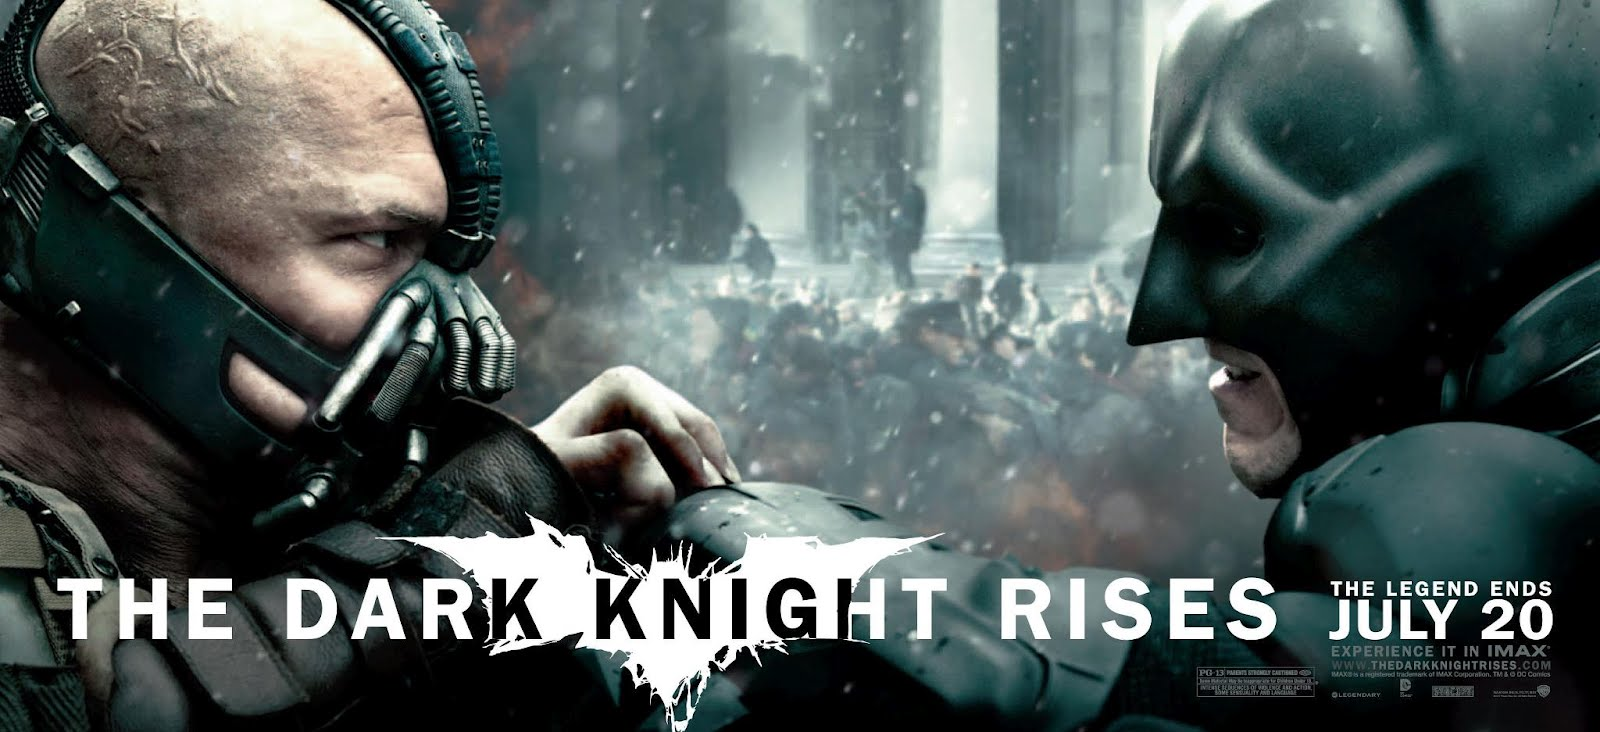 The dark knight rises batman is going mano a mano with bane the dark knight rises batman is going mano a mano with bane teaser trailer voltagebd Images